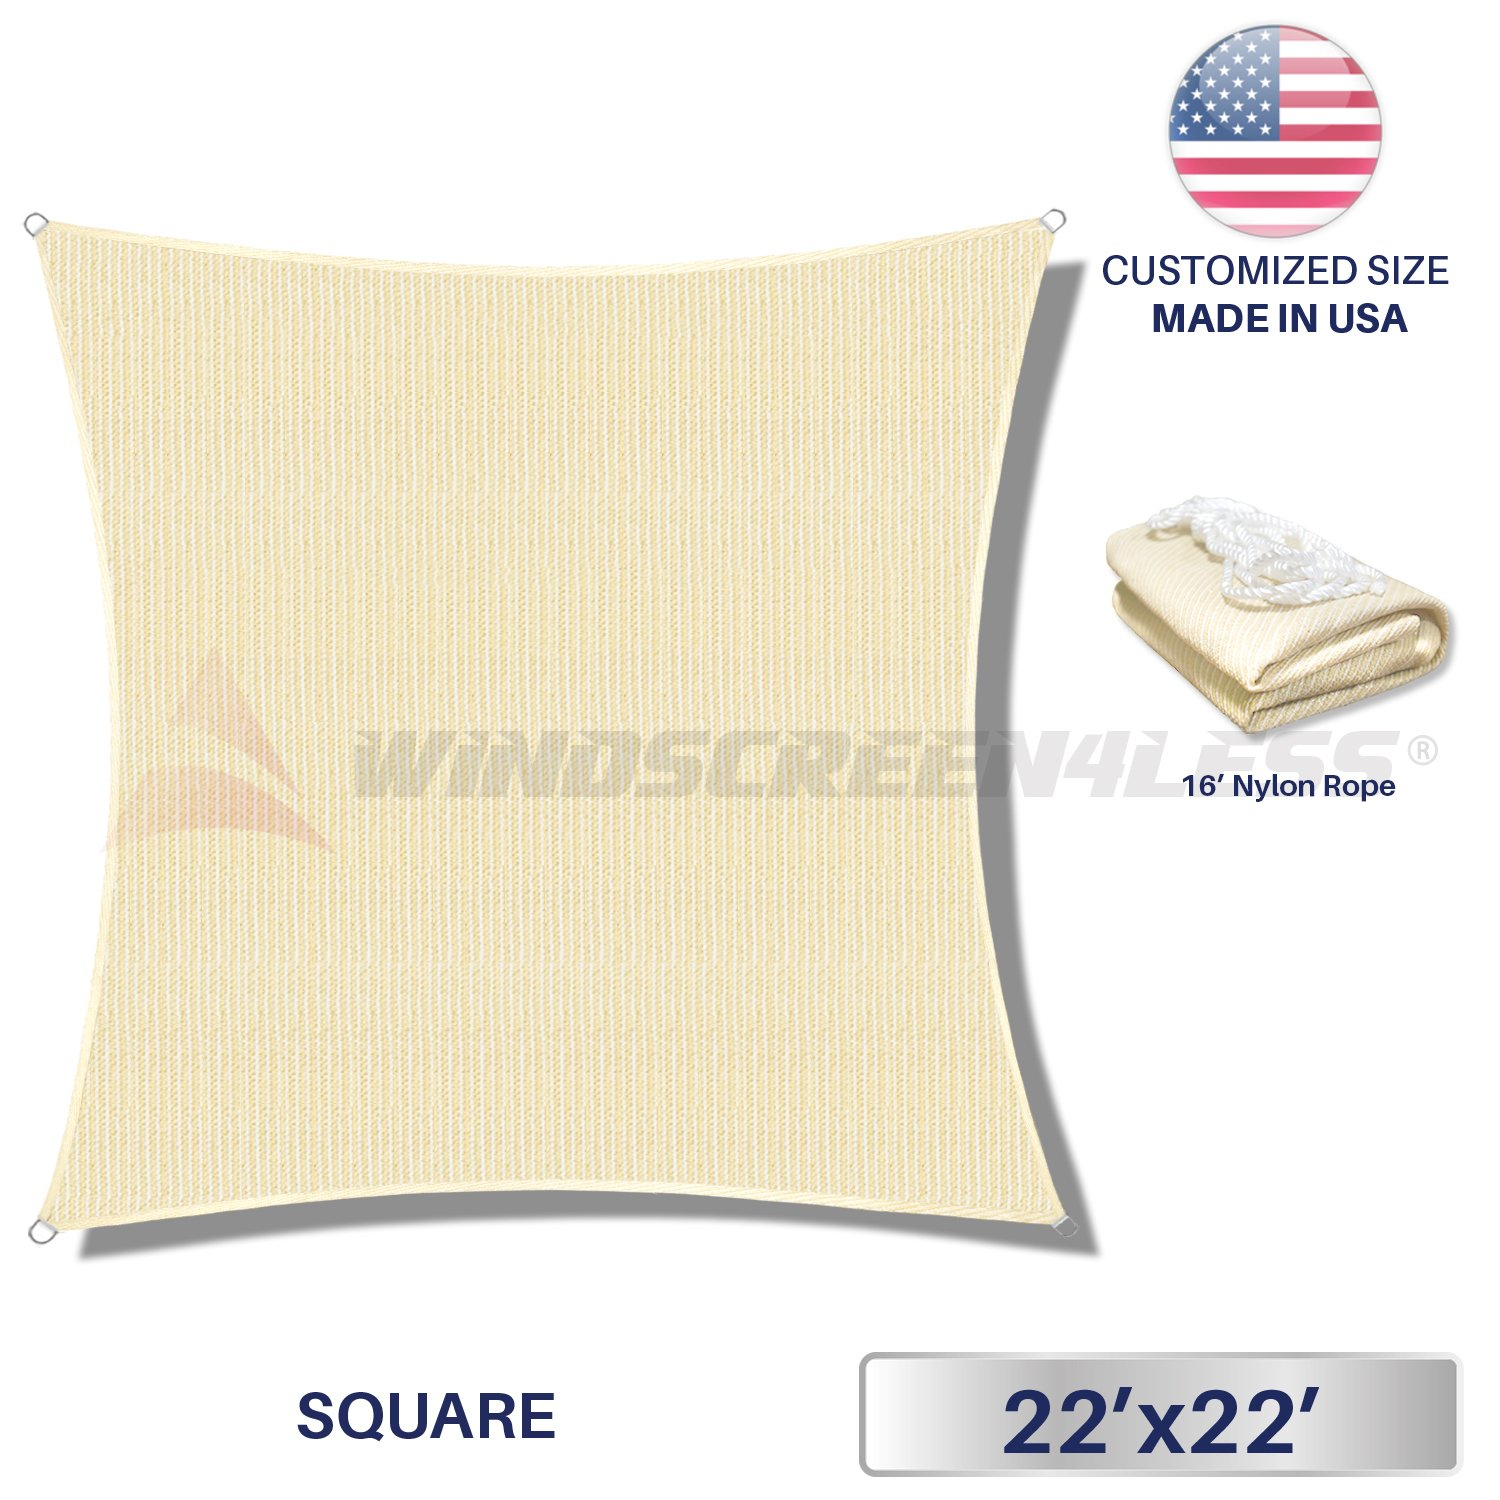 22' x 22' Sun Shade Sail UV Block Fabric Canopy in Beige Sand Square for Patio Garden Customized Size 3 Year Limited Warranty